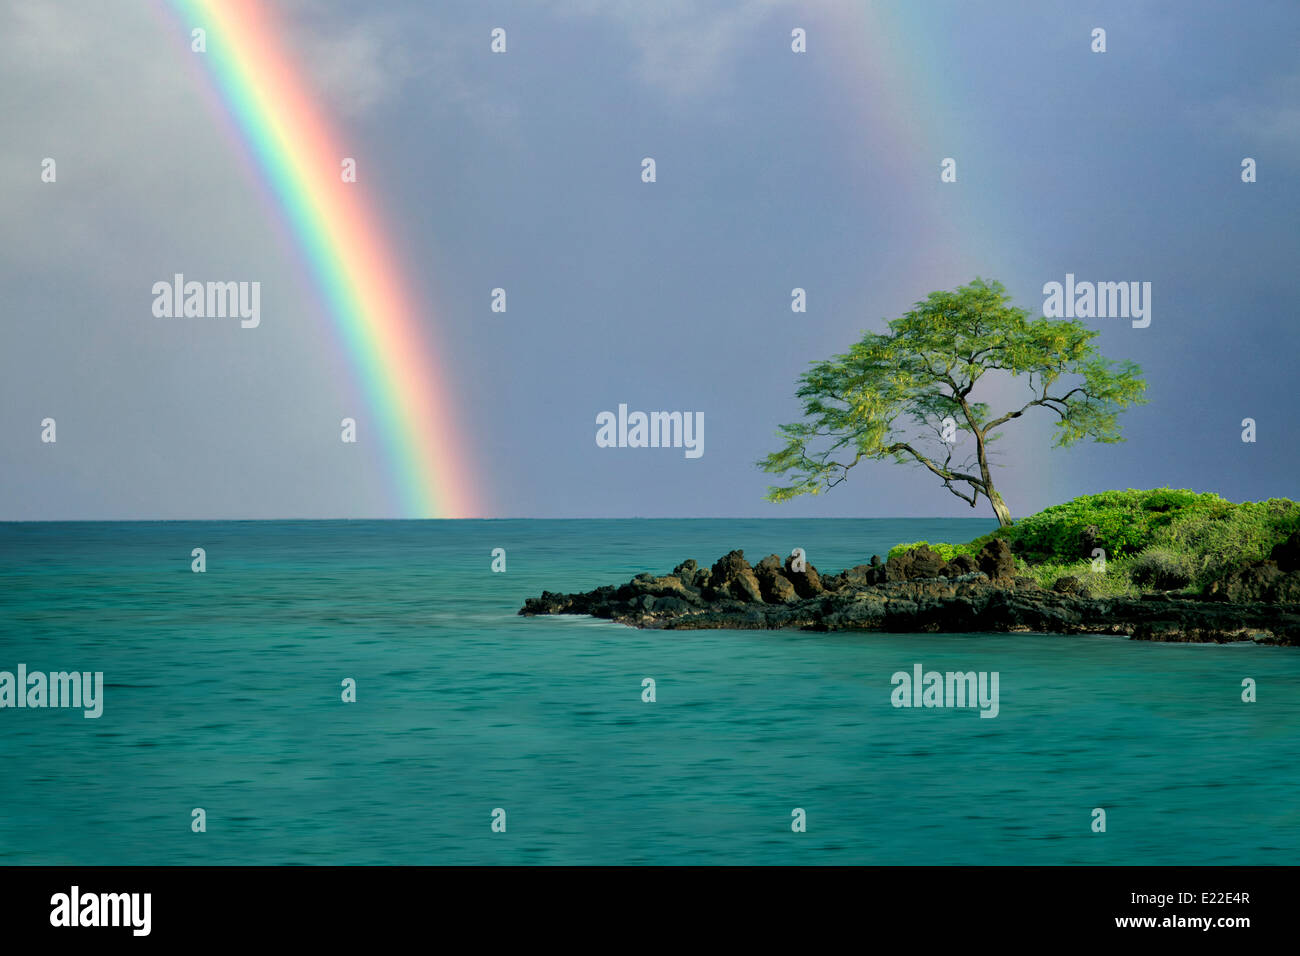 Lone tree and rainbow. Maui, Hawaii - Stock Image